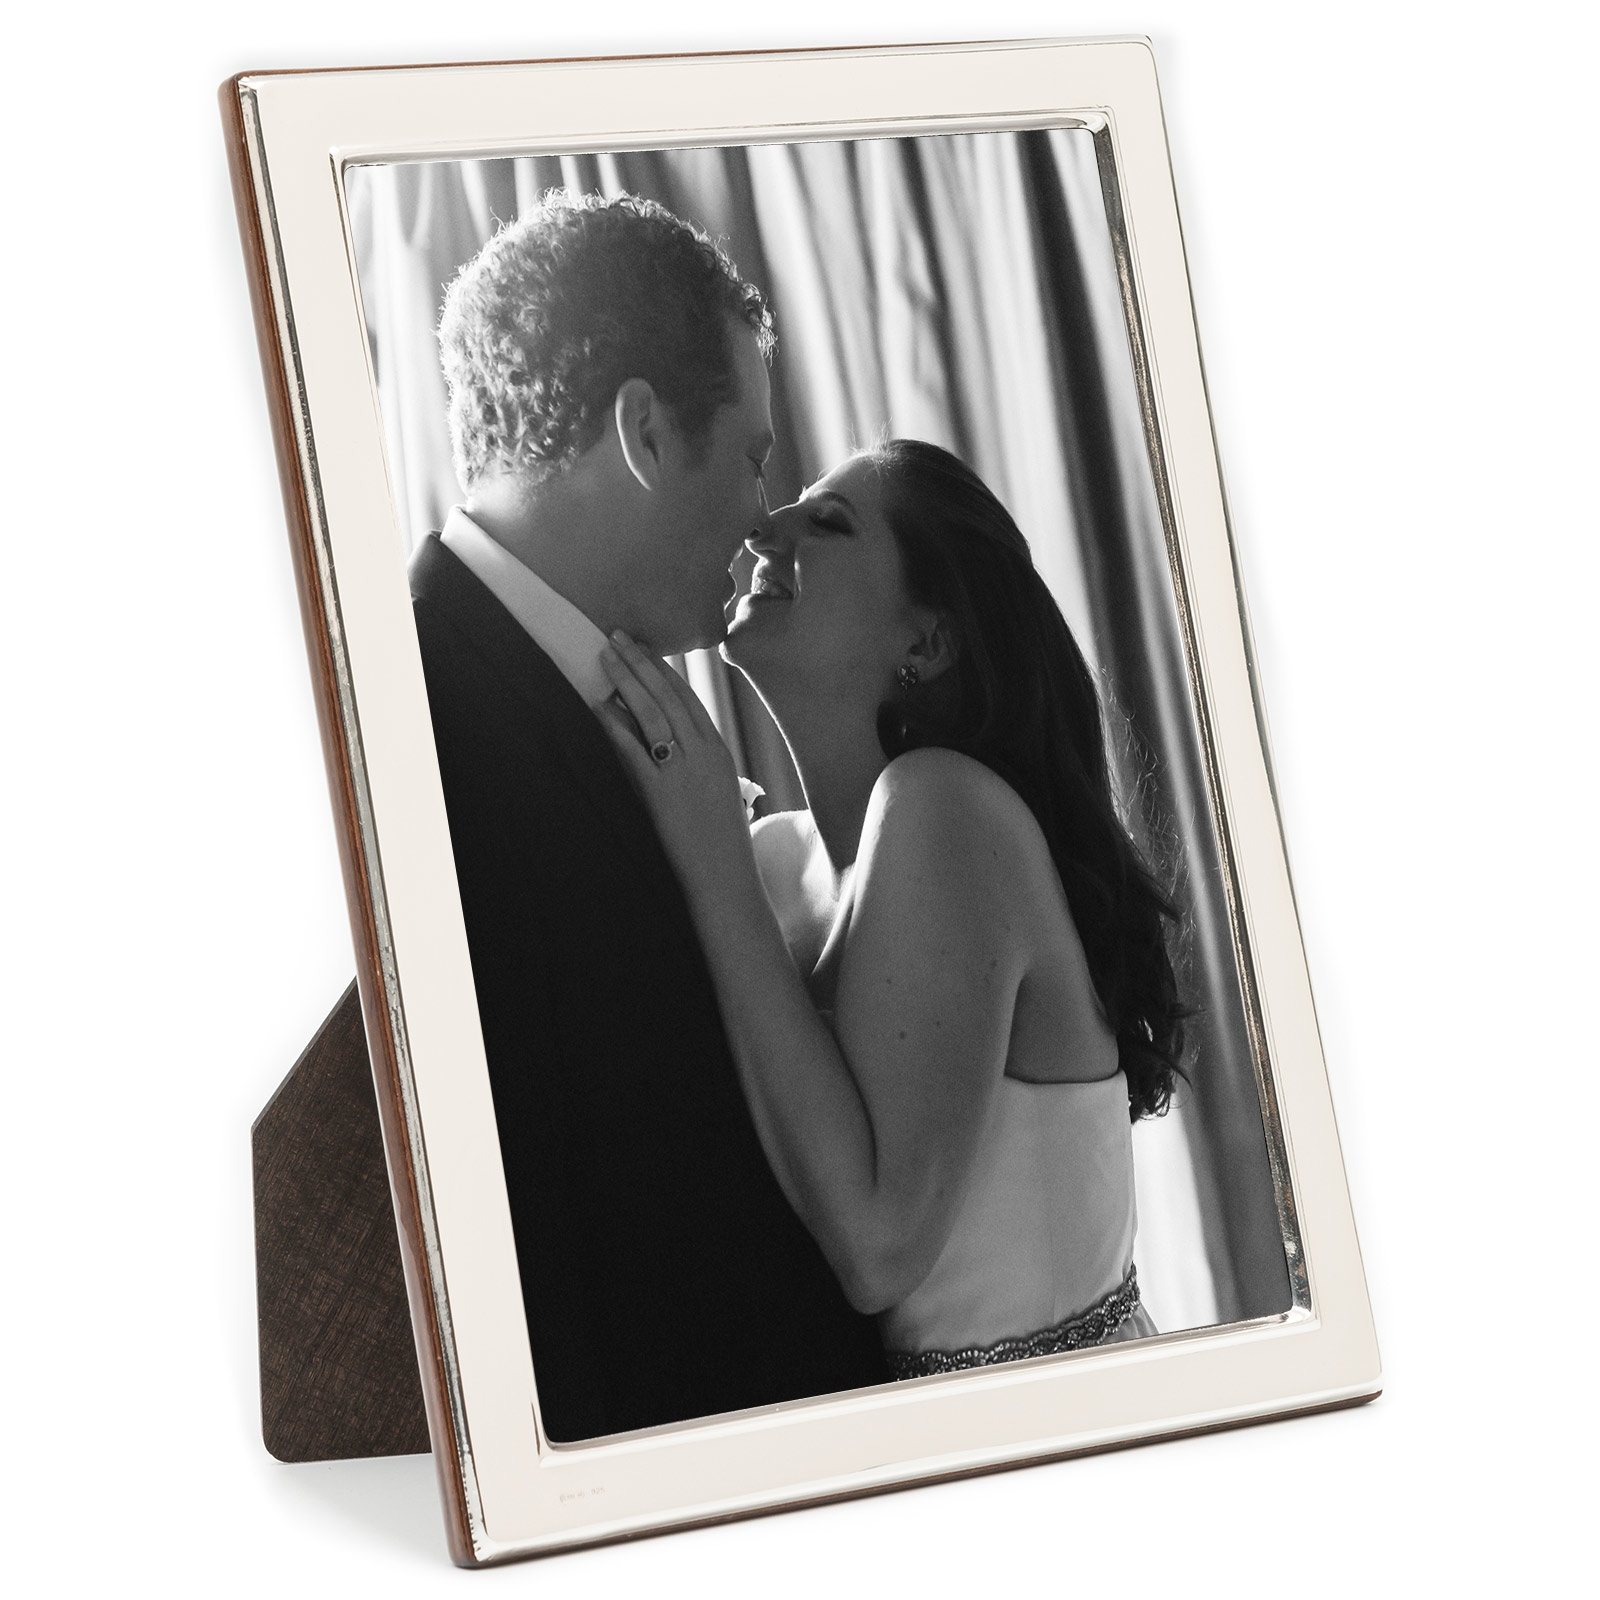 Personal Wedding Gifts & Photo Frames Online | Frameology